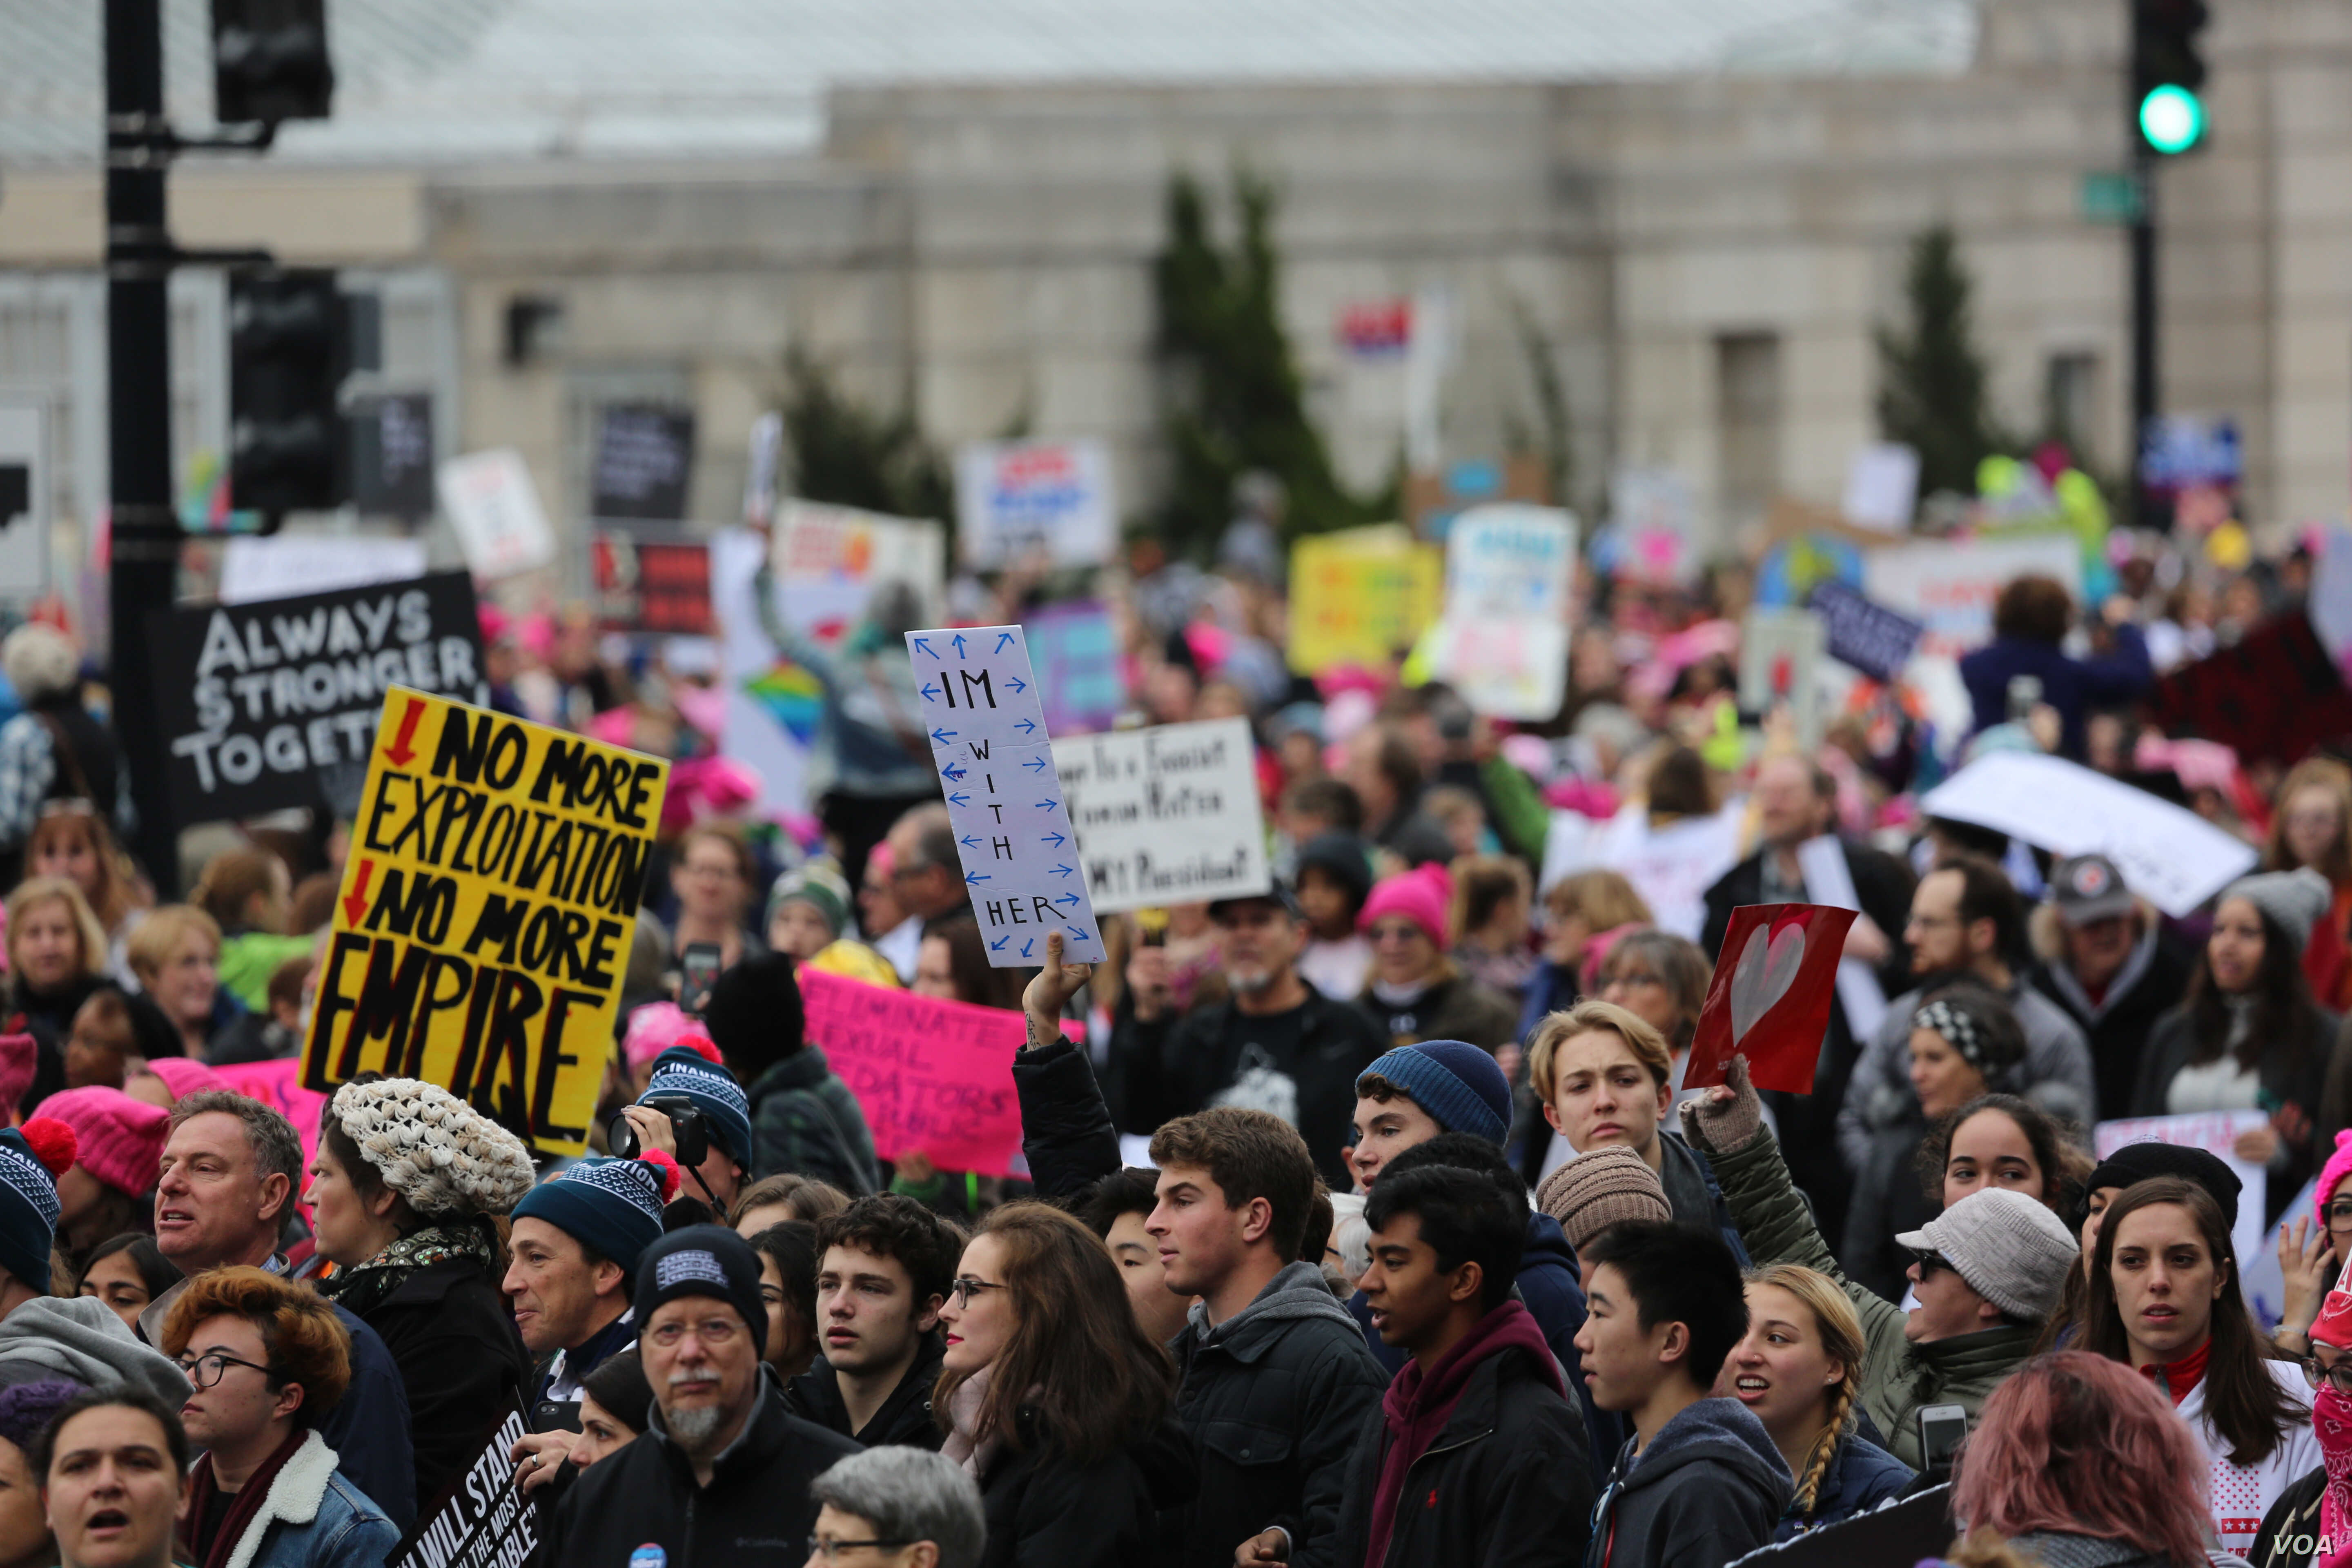 Protesters stream down Independence Avenue in Washington, D.C. for the Women's March on Washington. January 21, 2017 (B. Allen / VOA)